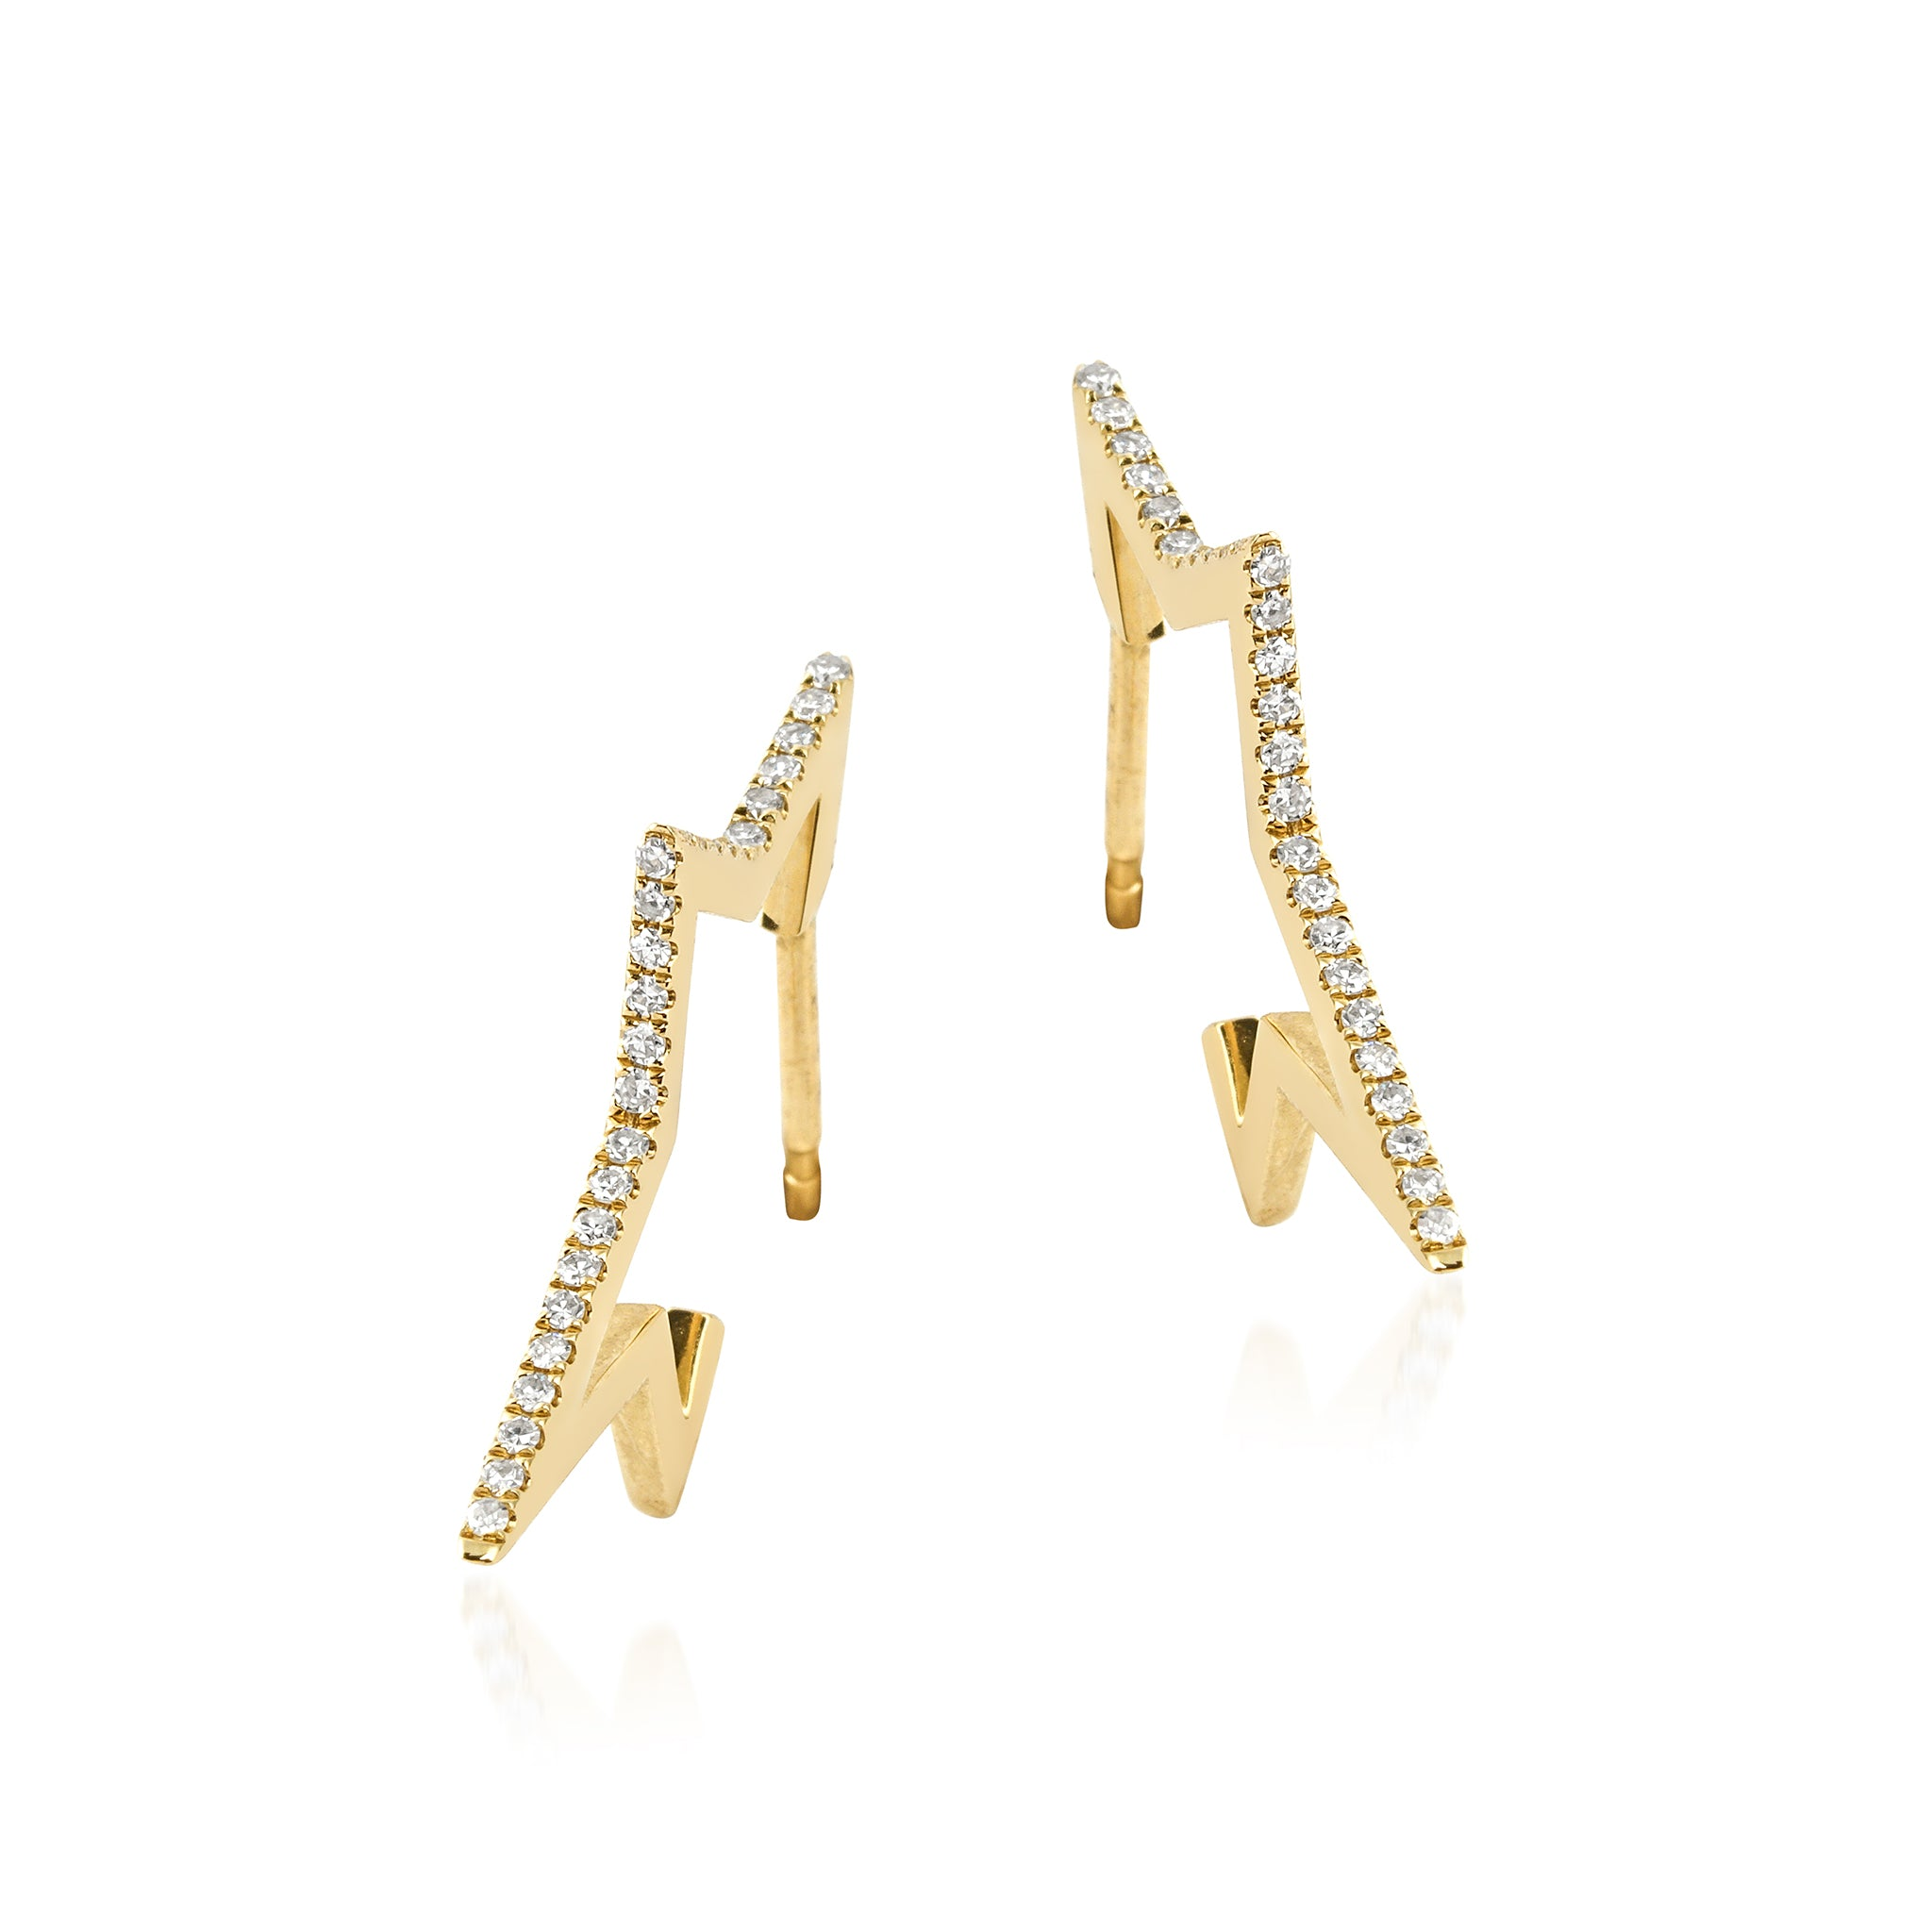 14KT Gold Diamond Curved Star Earrings, NEW - DilaraSaatci